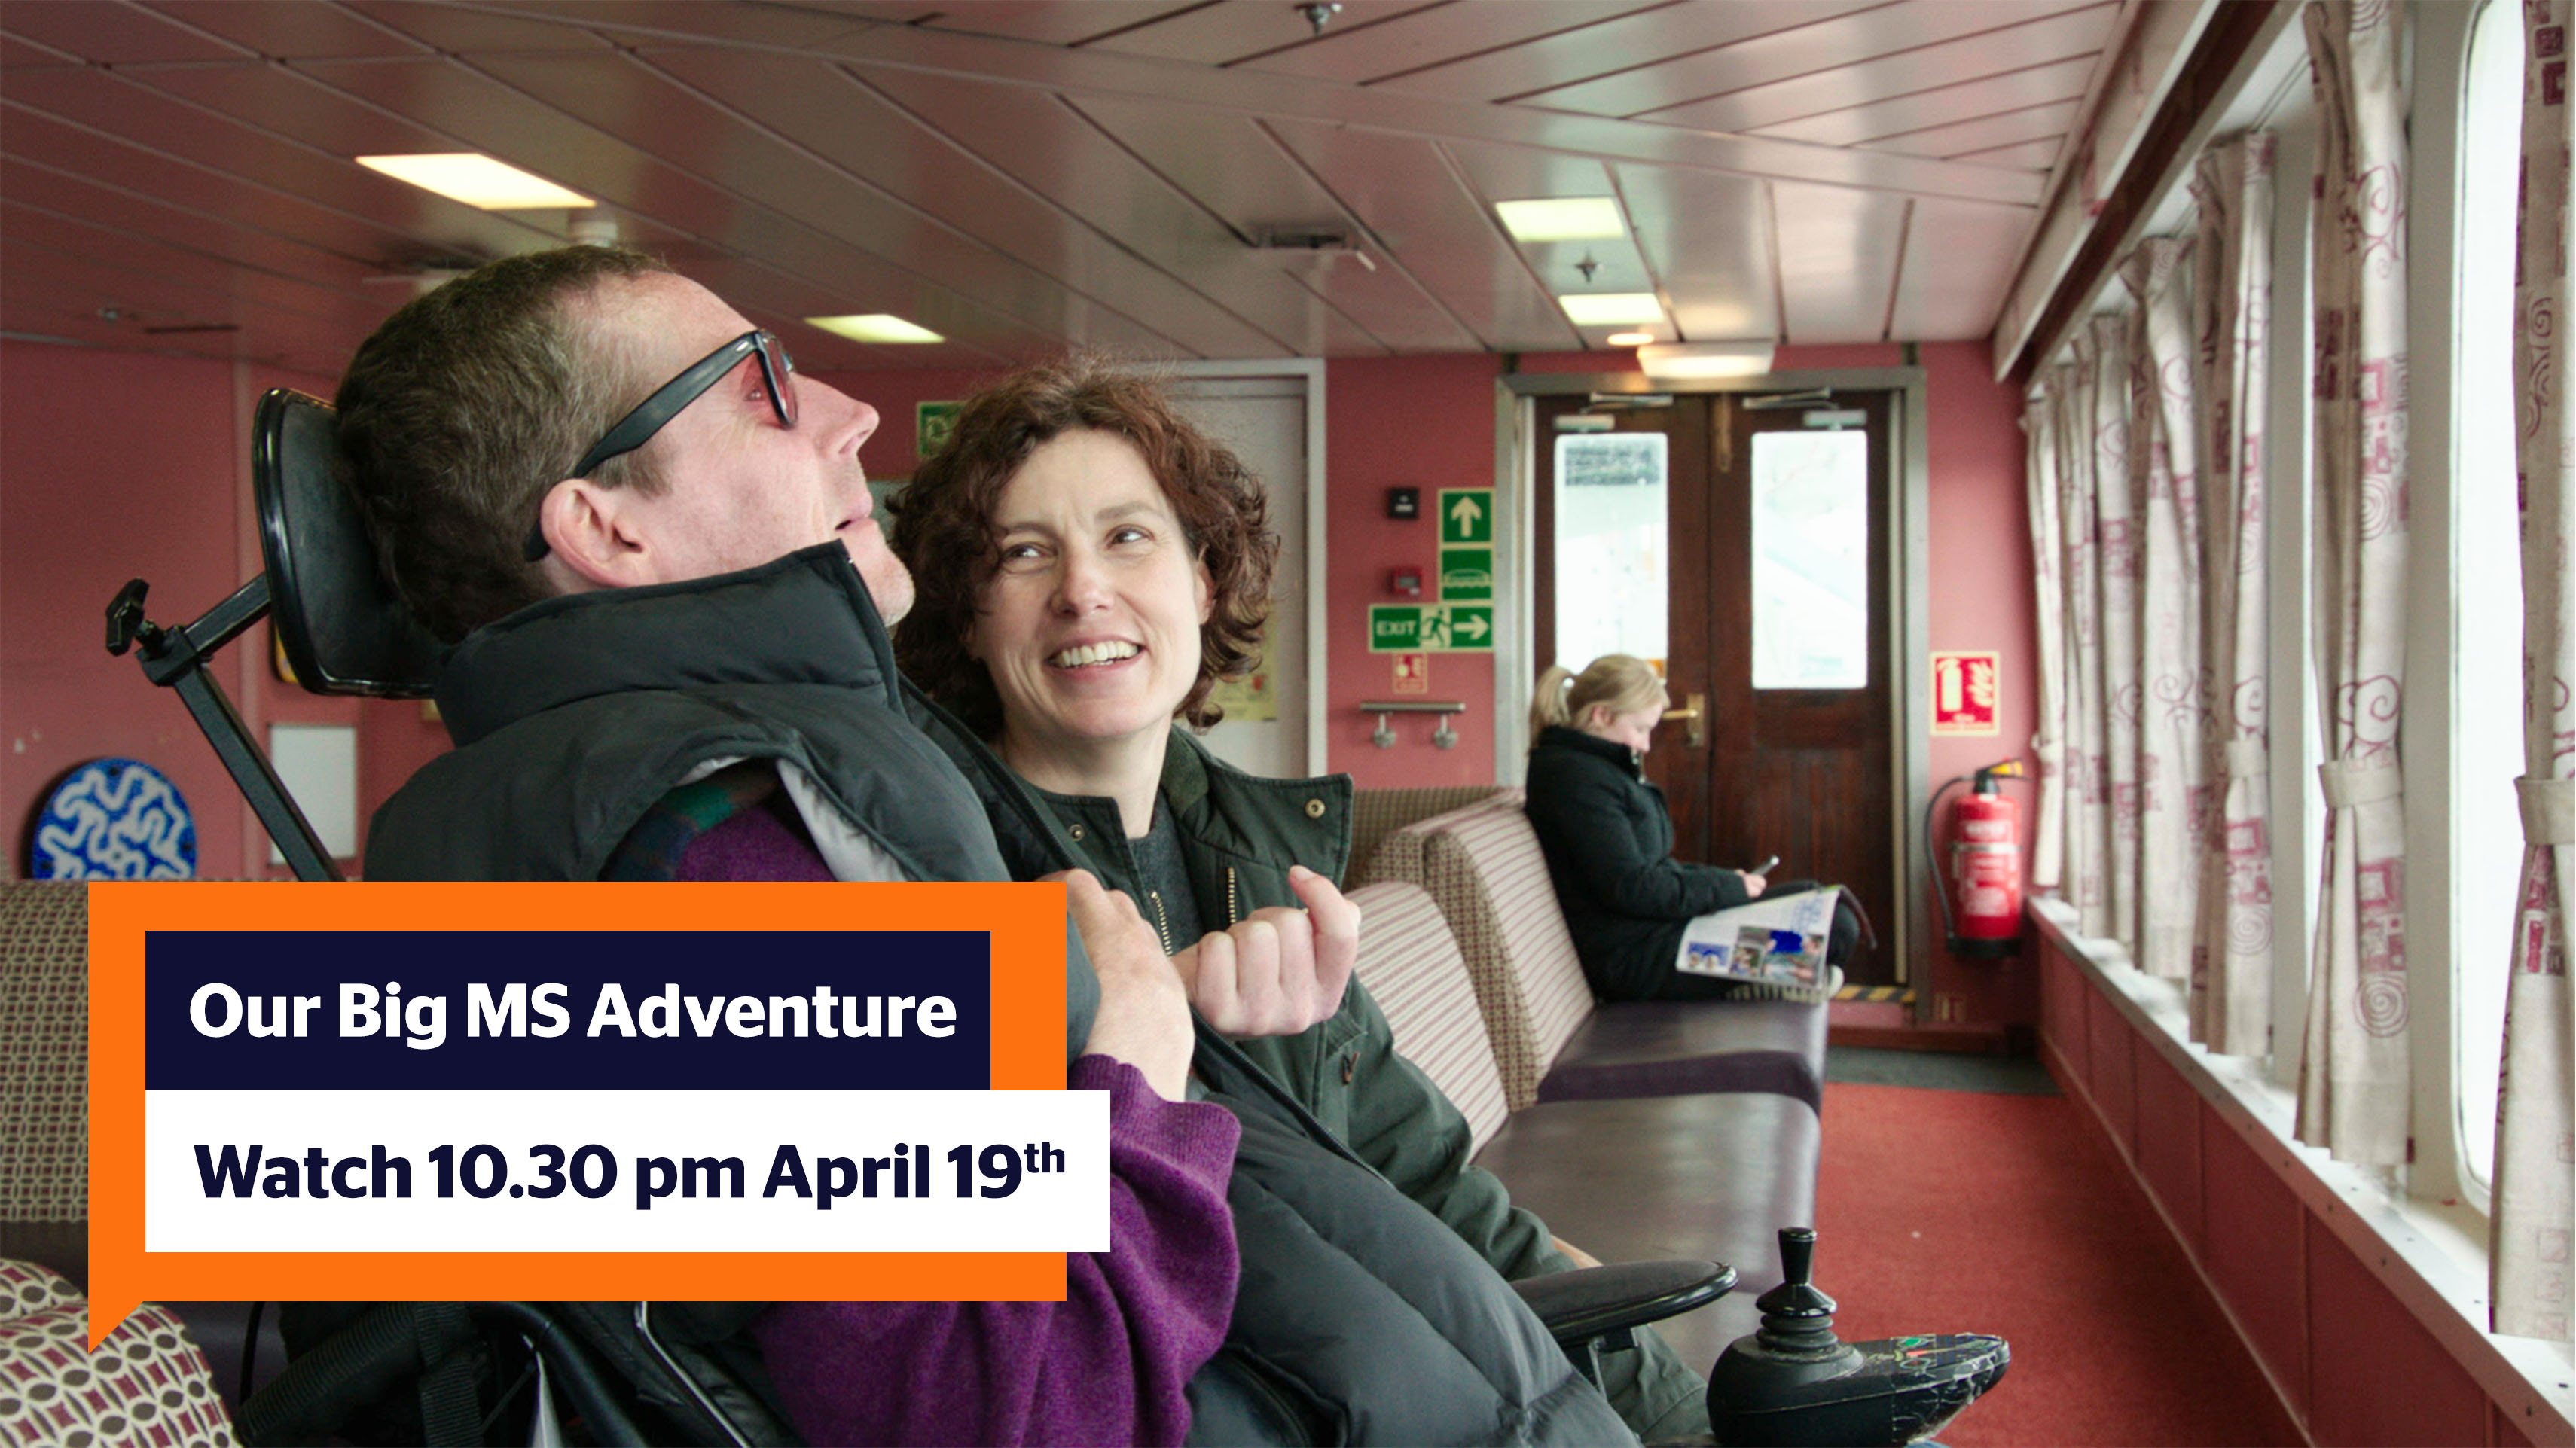 "A picture of wheelchair bound Al, who is facing to the right and Elizabeth is next to him smiling with short curly brown hair. They are in a ferry waiting lounge with salmon walls and brown sofas. There is an orange text box in the bottom left corner reading ""Our Big MS Adventure; Catch it 19th April at 10.30 pm"")"